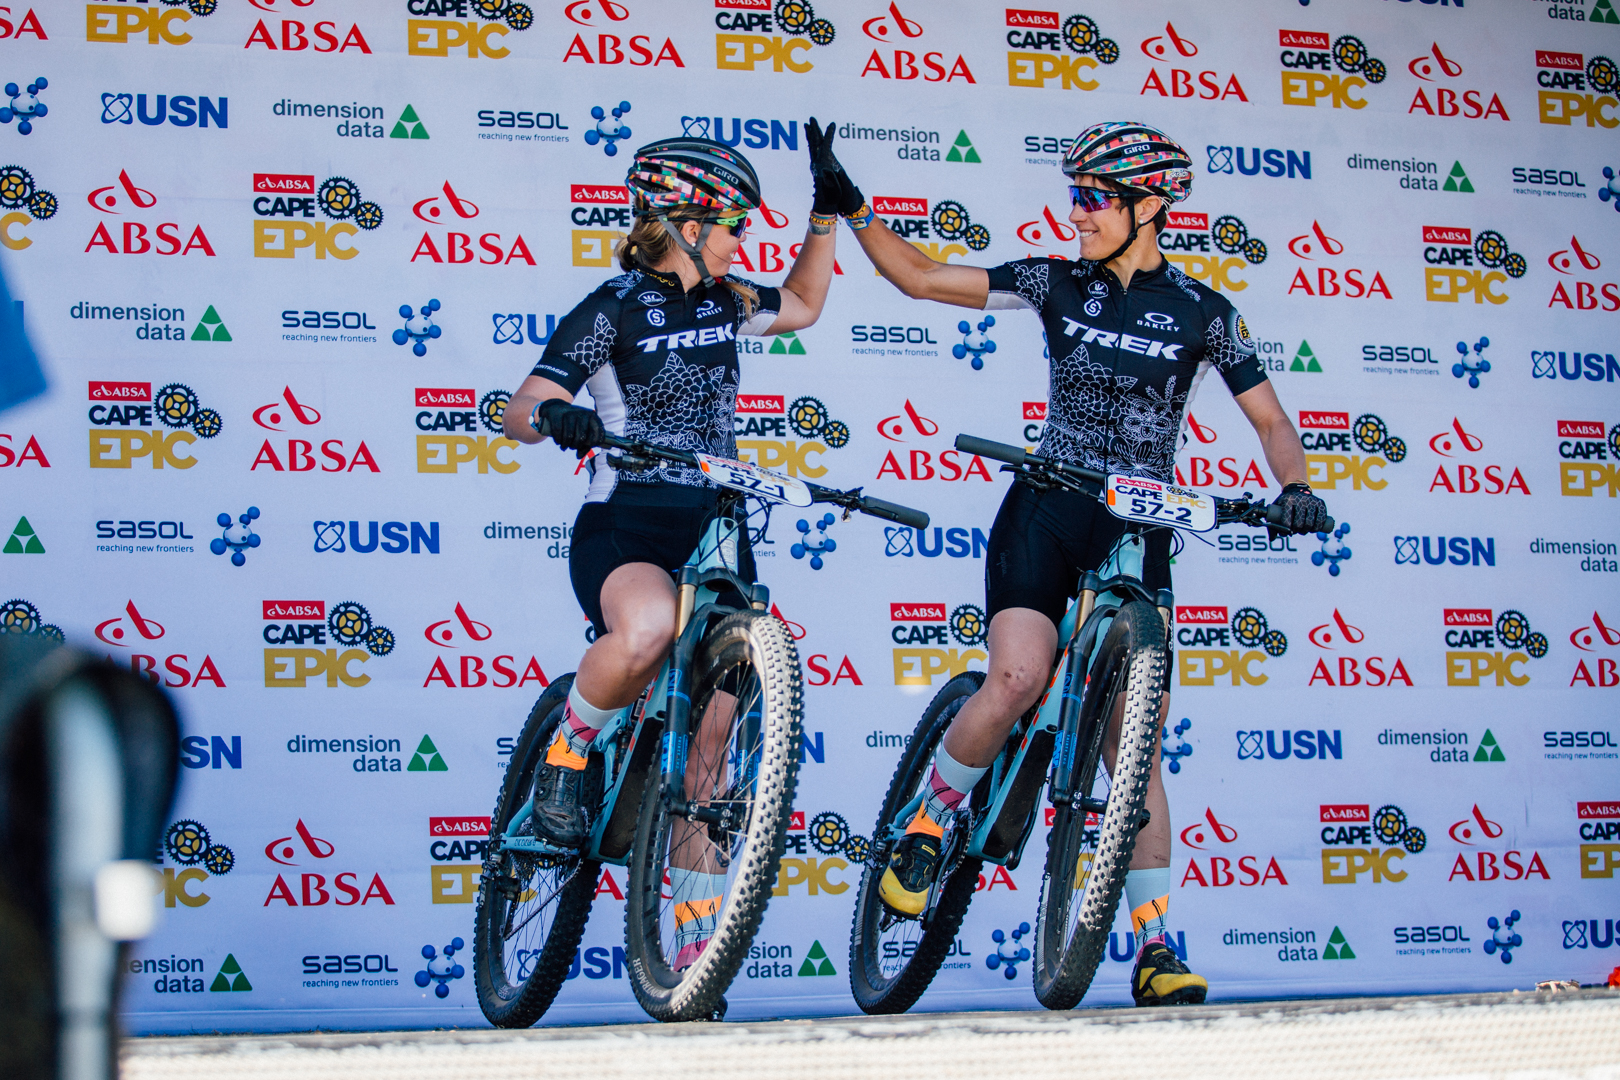 The starting line @ Absa Cape Epic - photo: Jeff Kennel